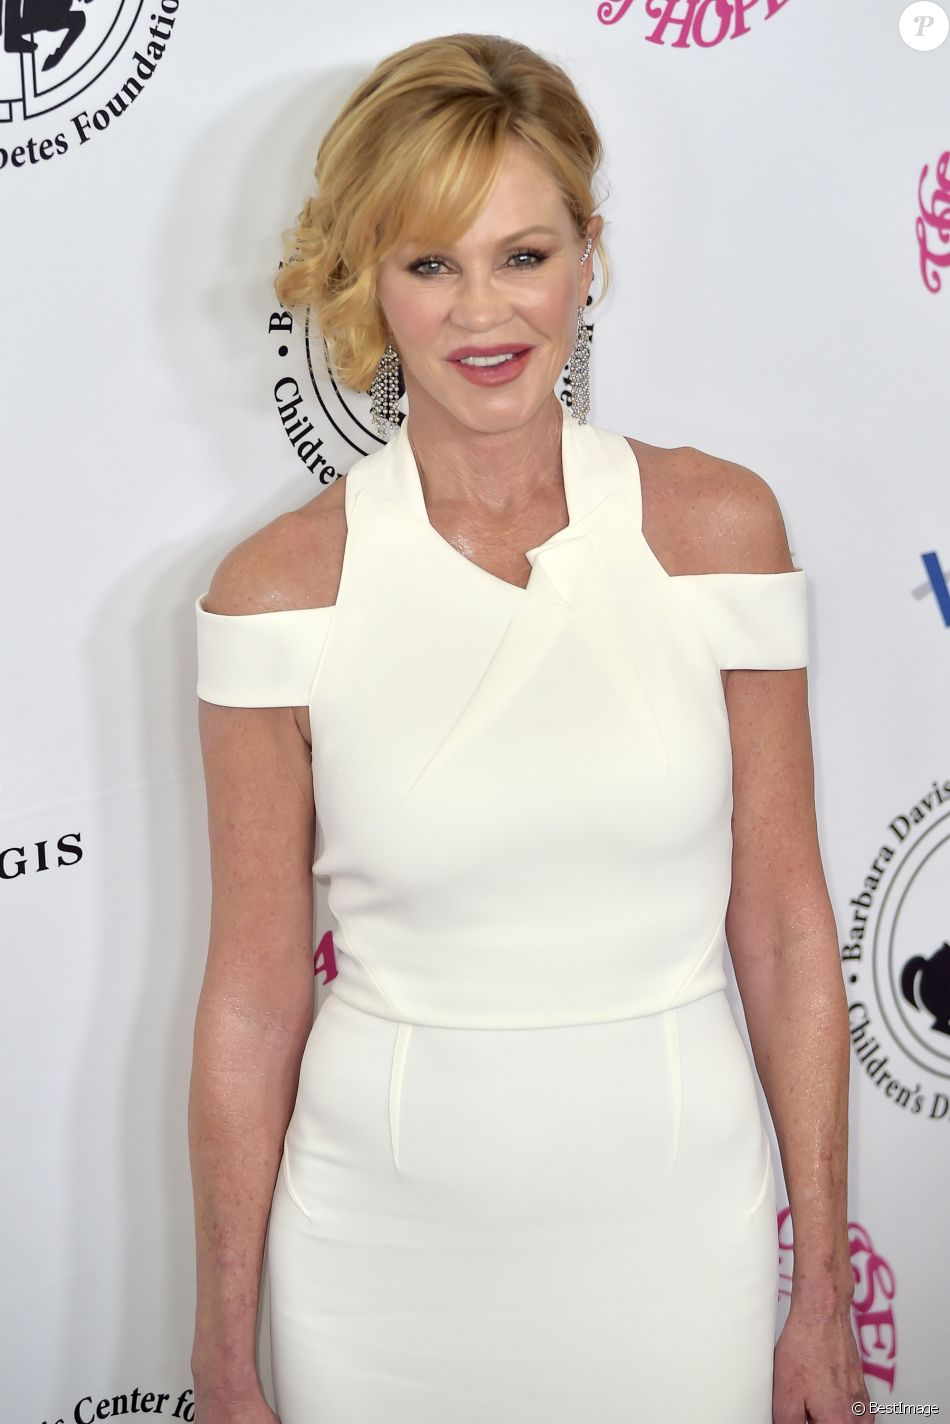 Melanie Griffith à la soirée caritative Carousel Of Hope 2016 à Los Angeles, le 8 octobre 2016 © Future-Image via Zuma/Bestimage